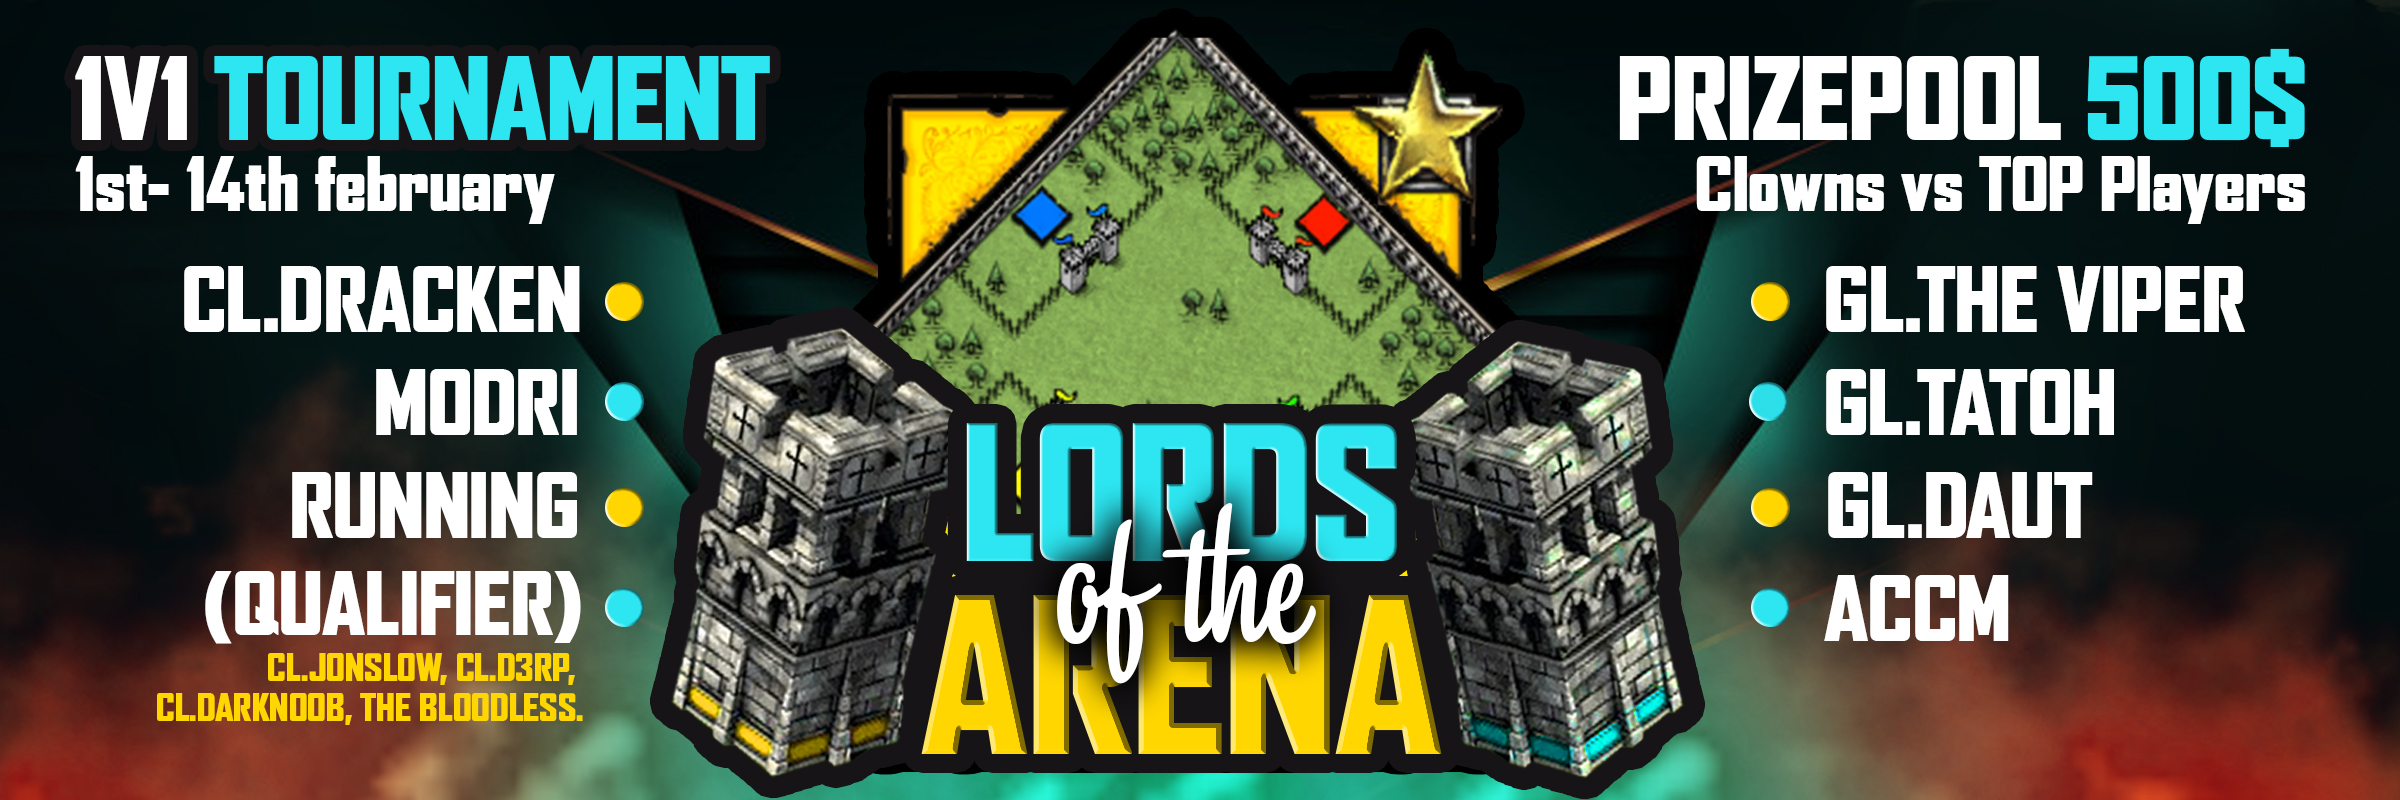 Lords_of_the_arena.jpg